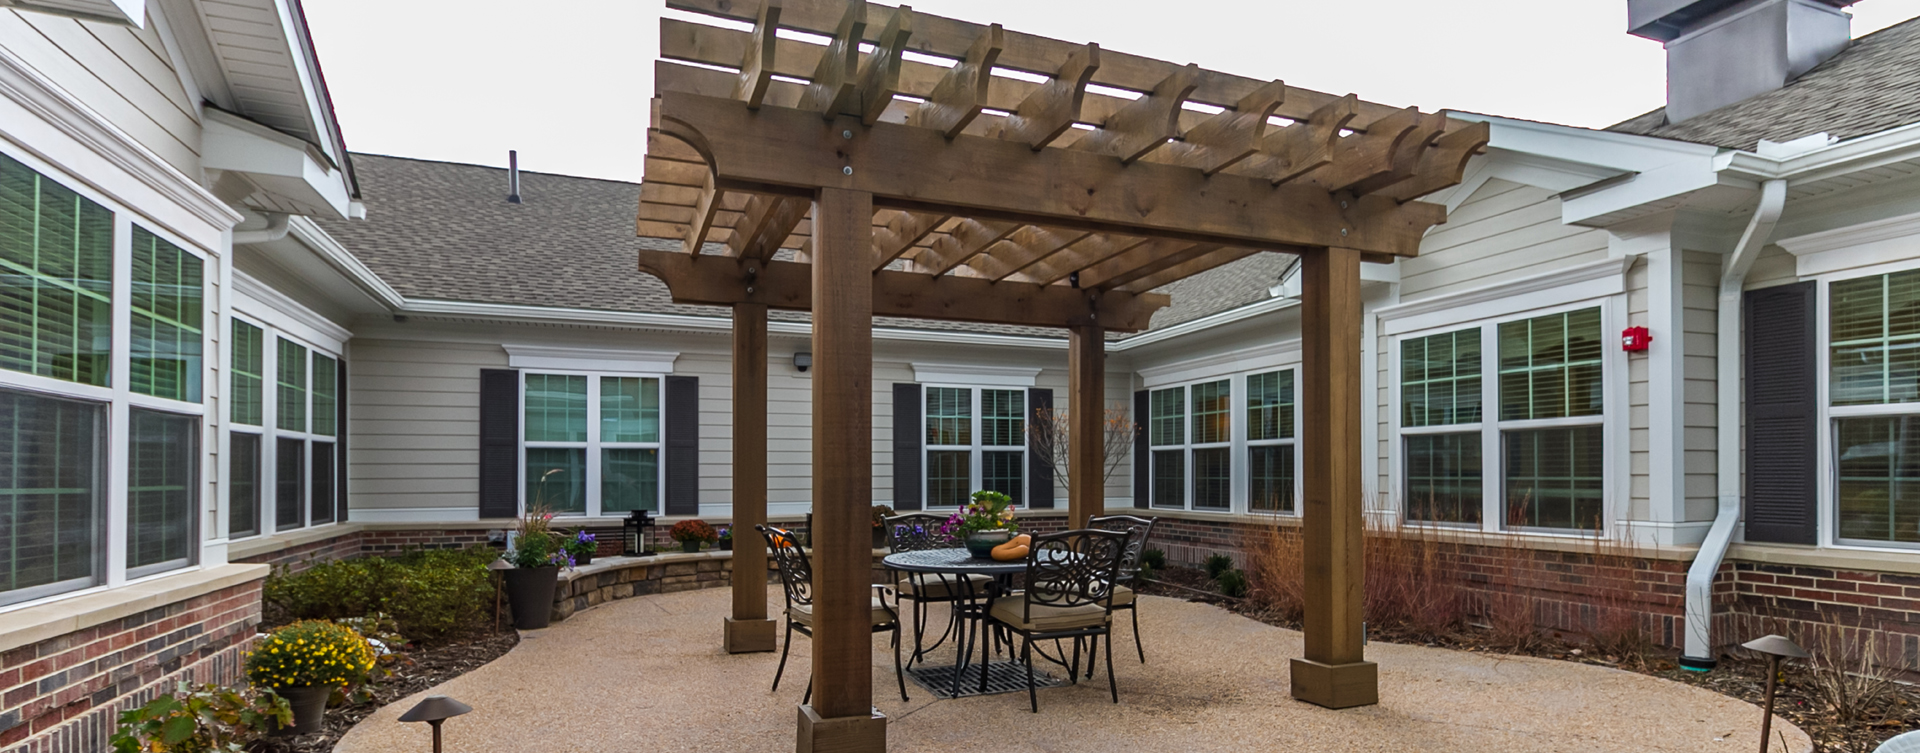 Residents with dementia can enjoy the outdoors by stepping into our secure courtyard at Bickford of Virginia Beach